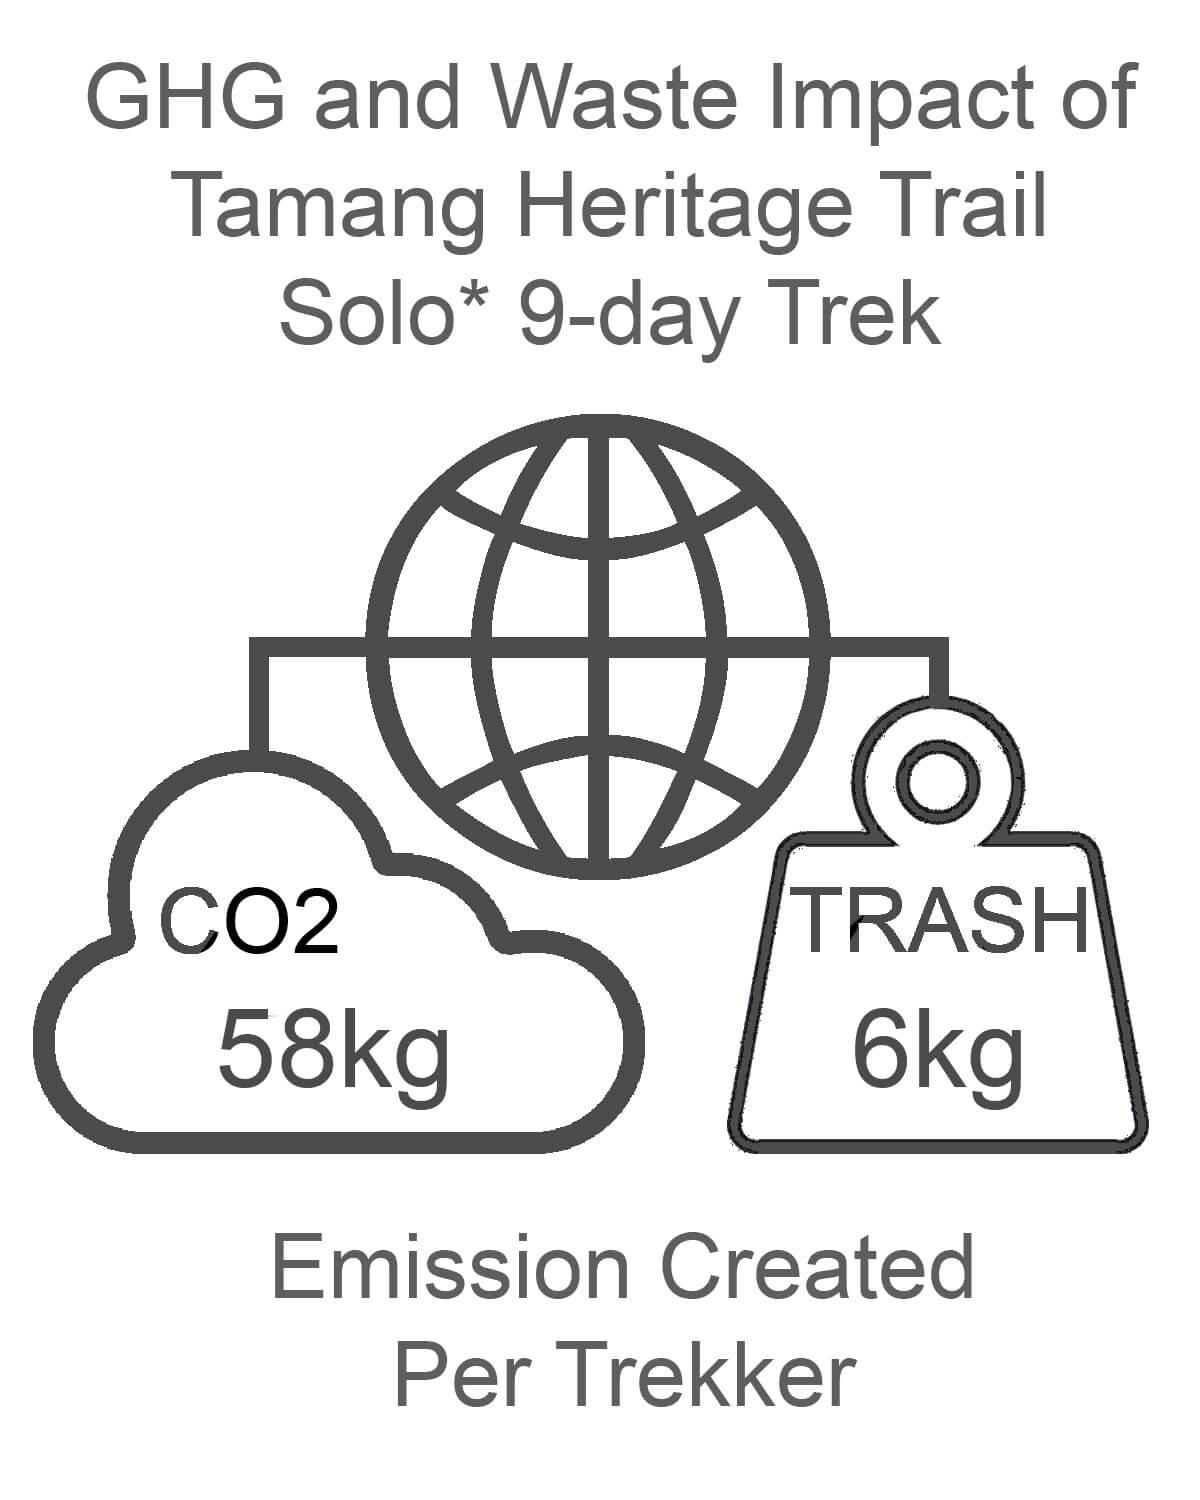 Tamang Heritage Trail GHG and Waste Impact SOLO